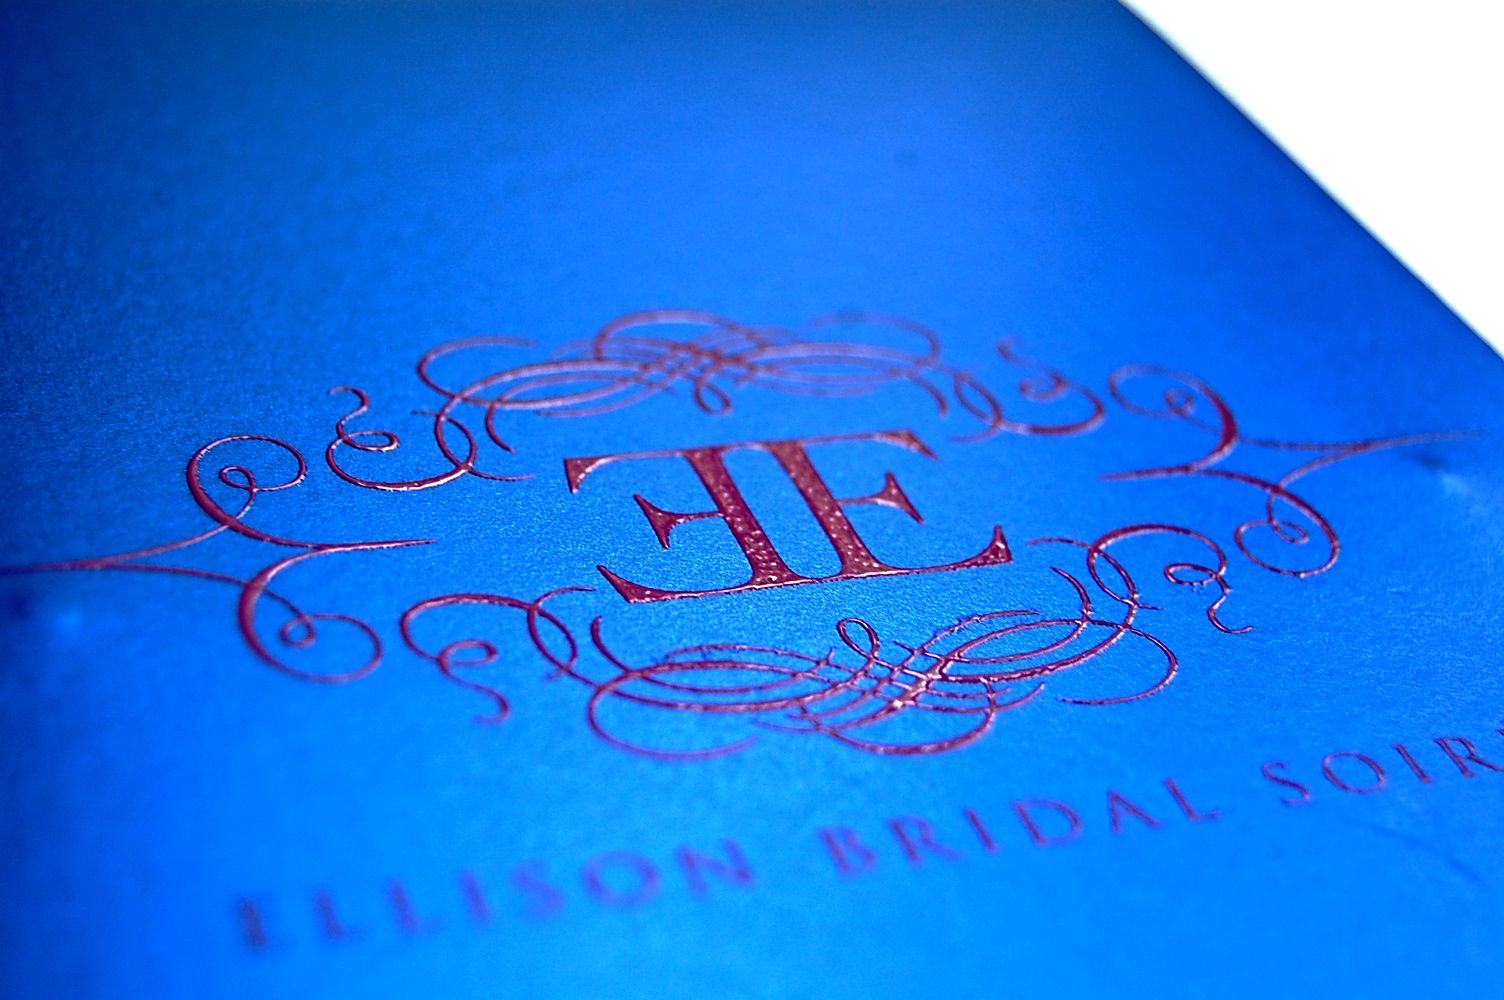 Luxe Bridal Soiree Invitation By Lepenn Designs Featuring Fuchsia